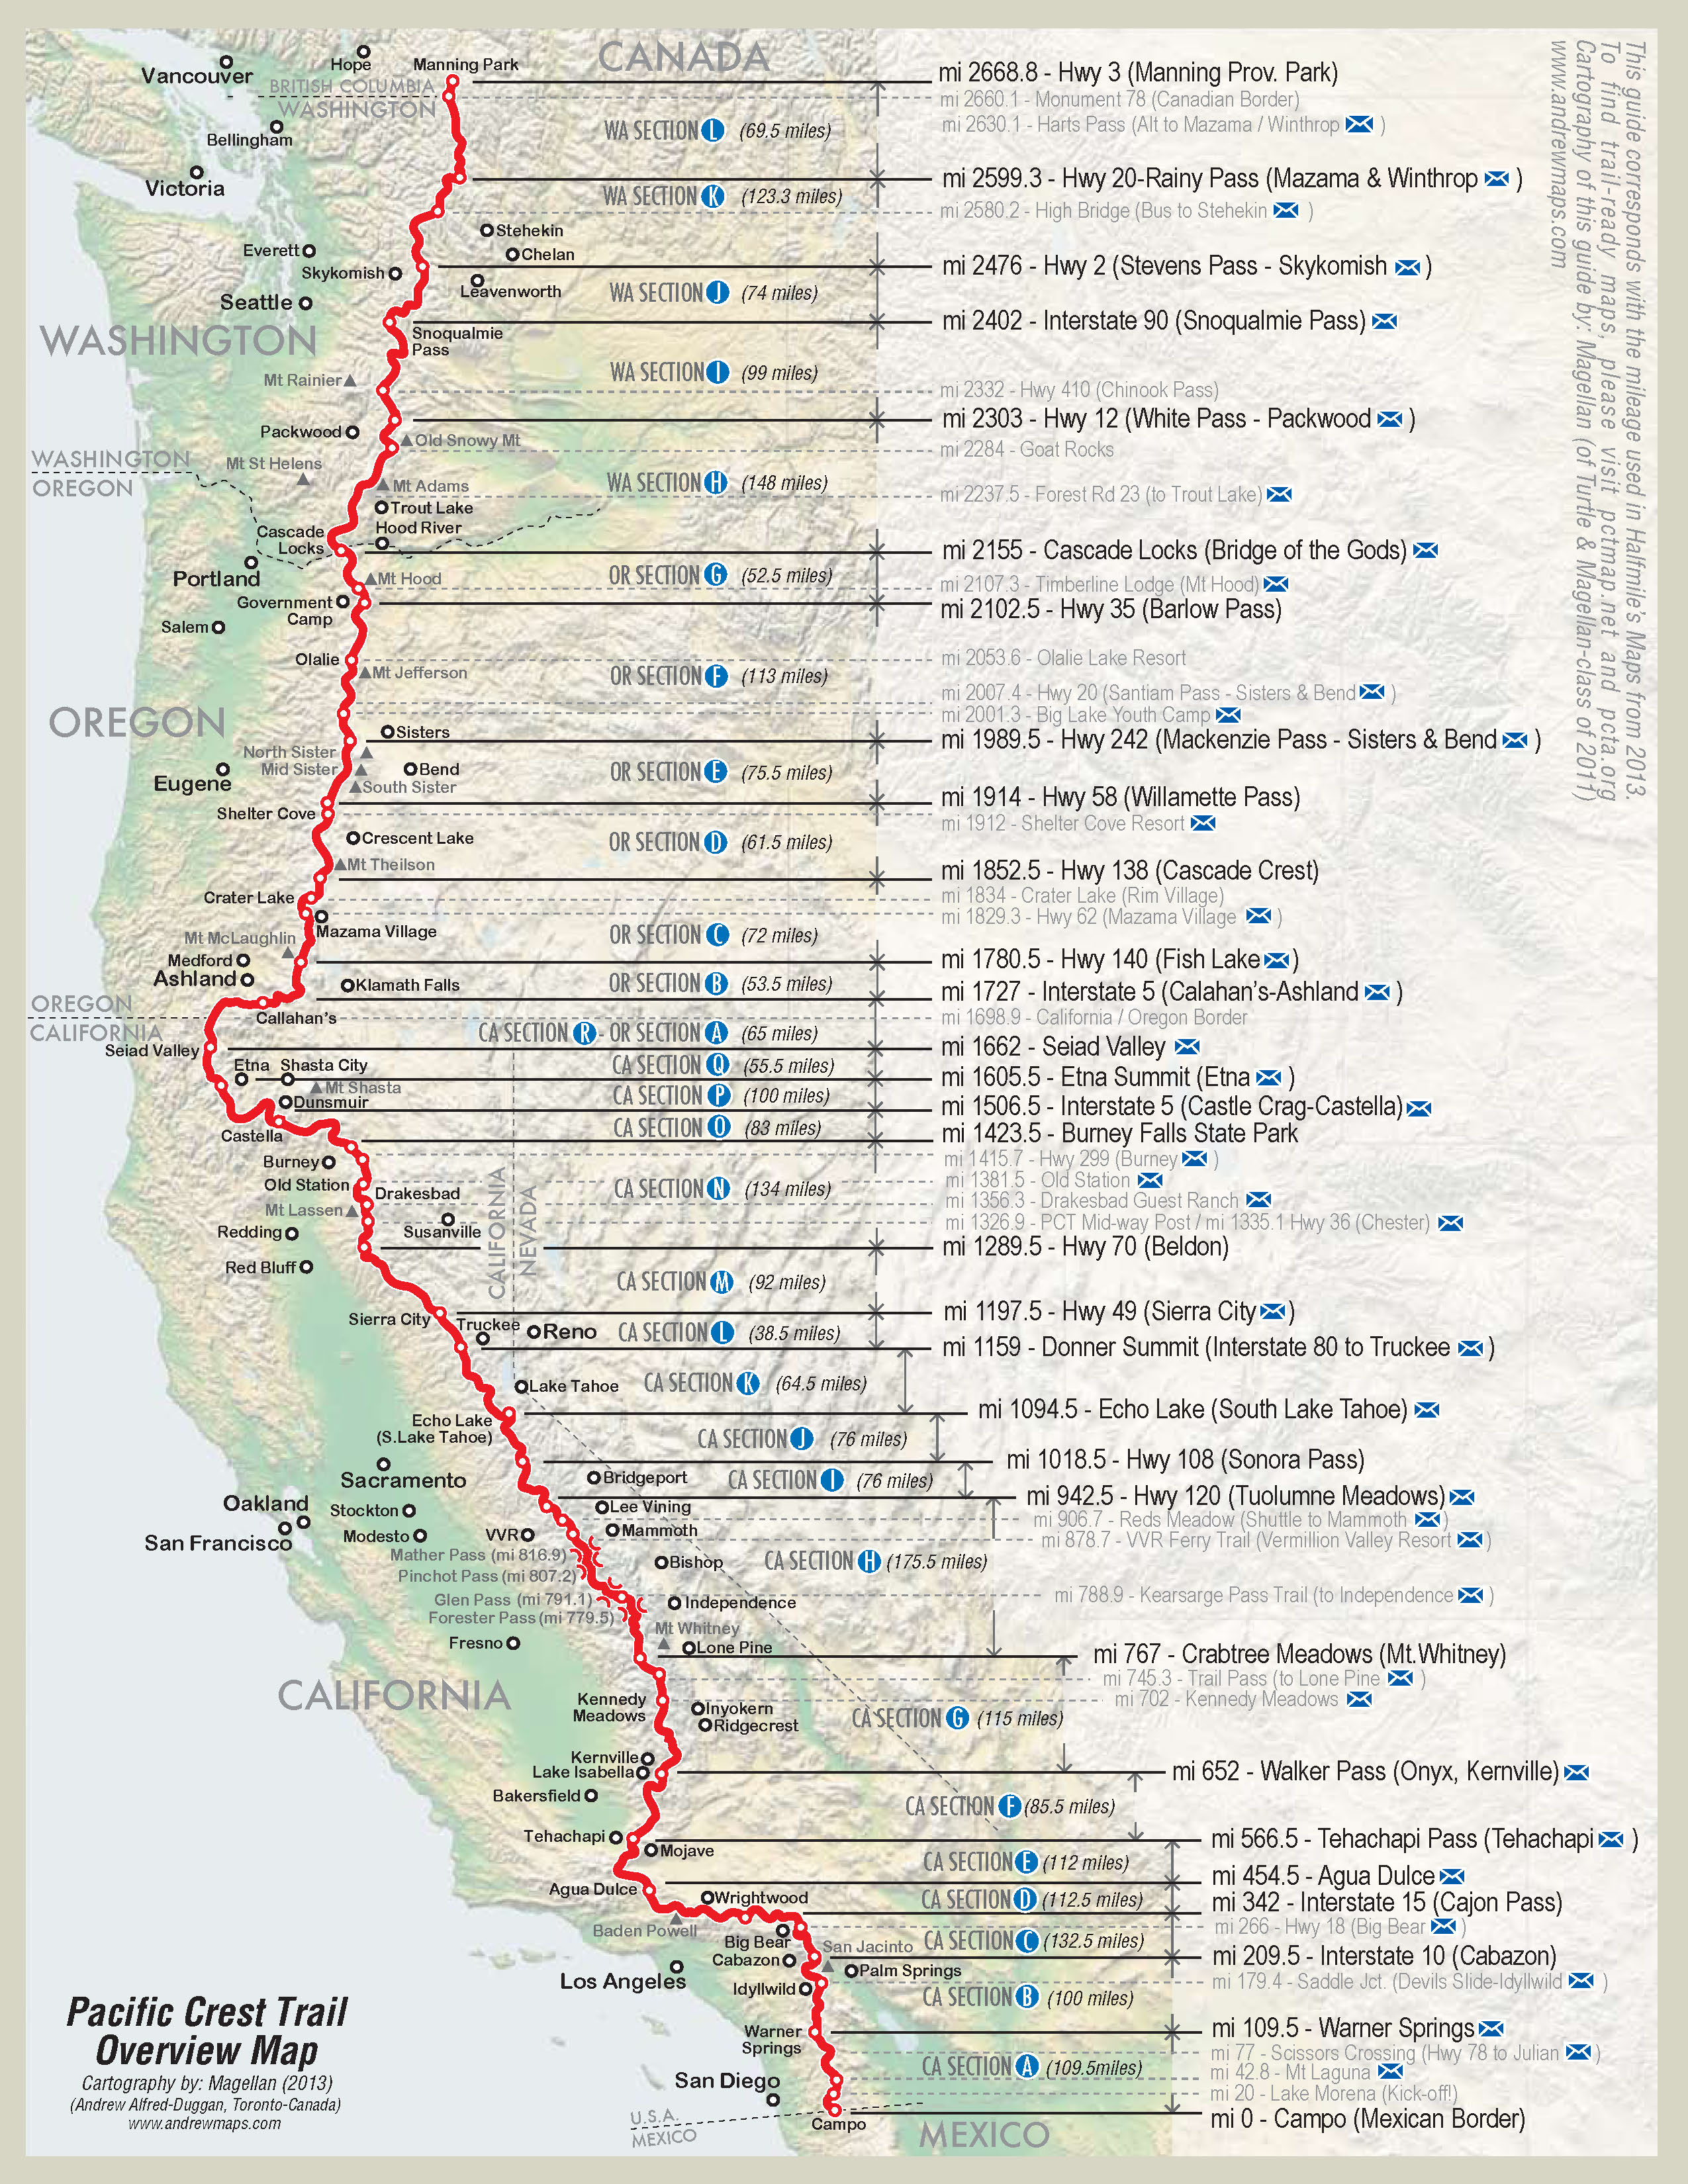 pct_overview.jpg